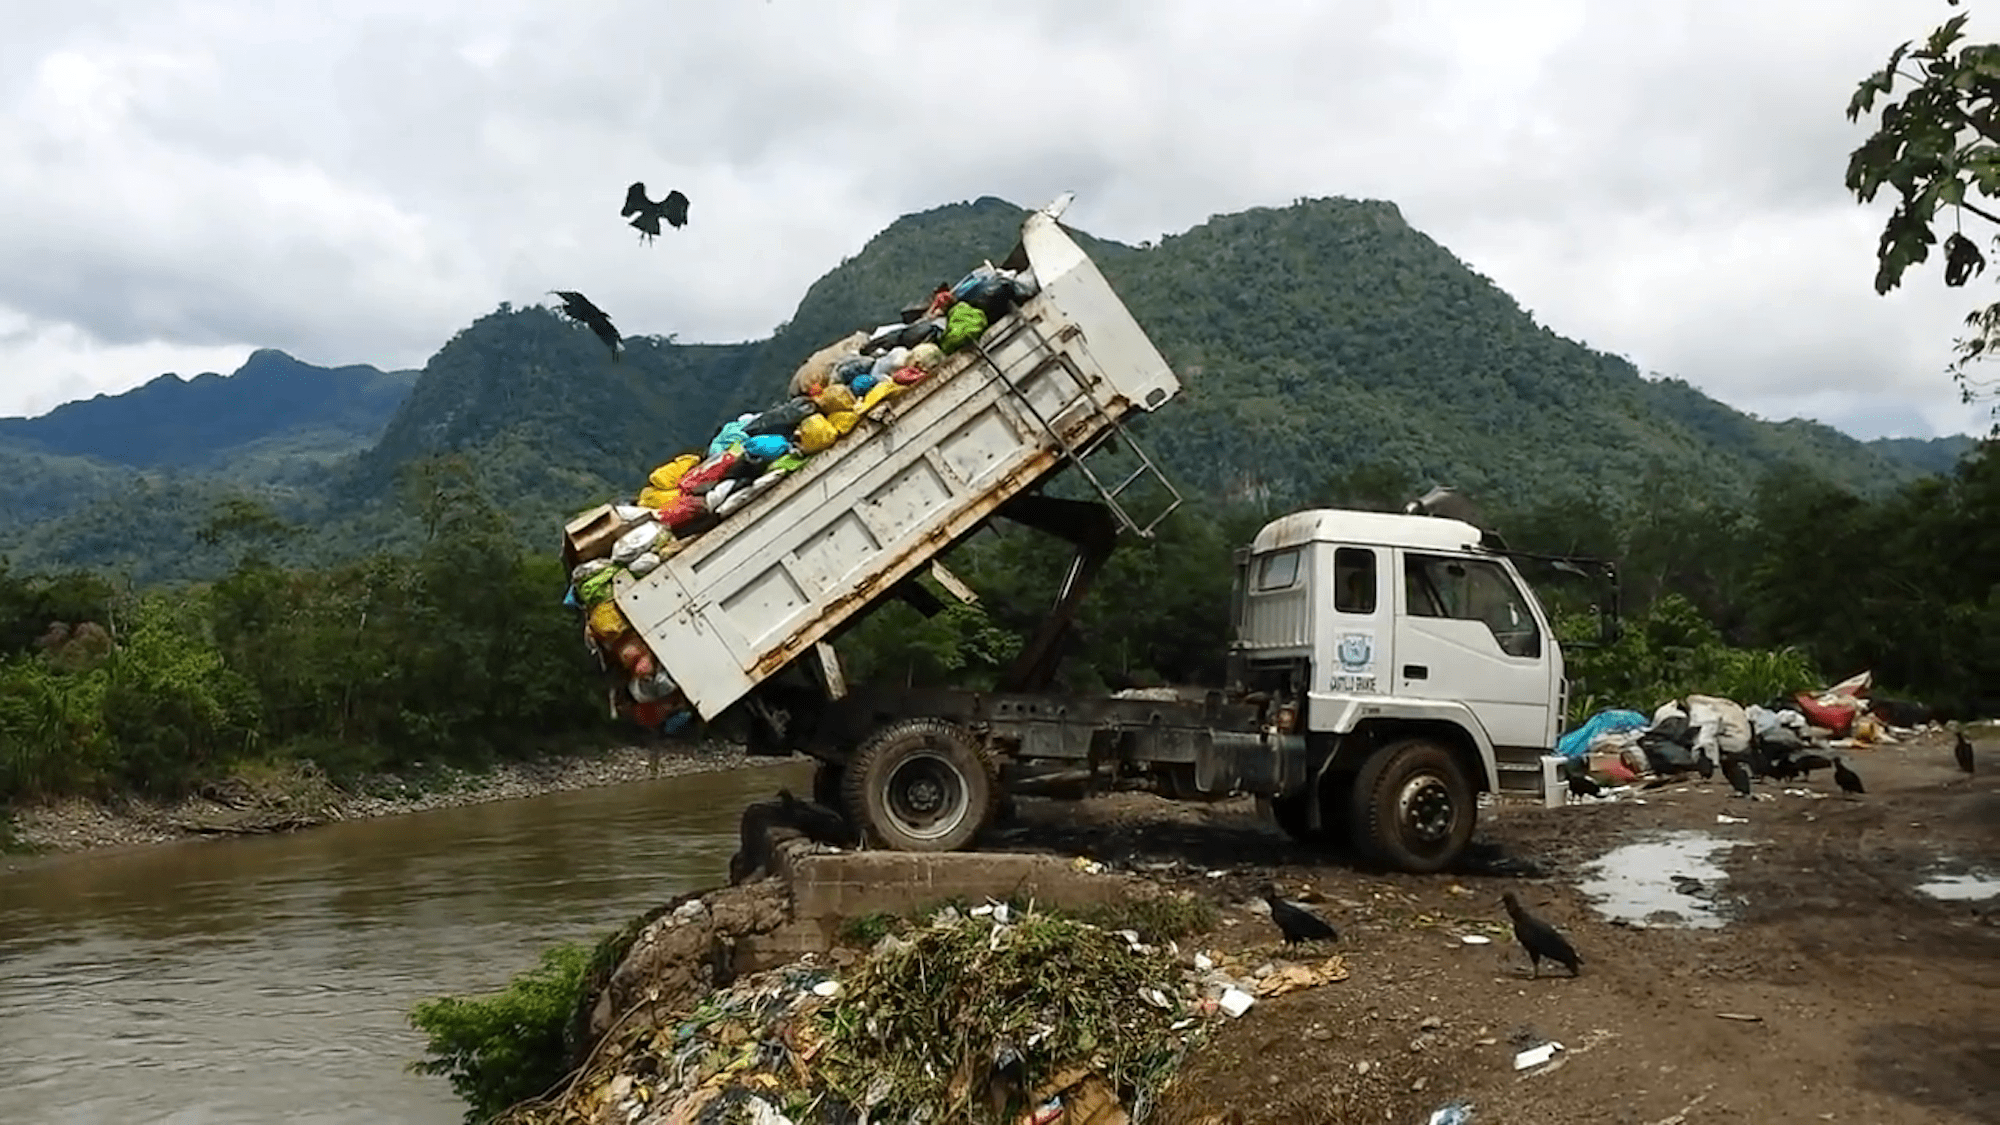 A Letter To The Editor: How Improper Recycling Processes Can Further Damage The Environment